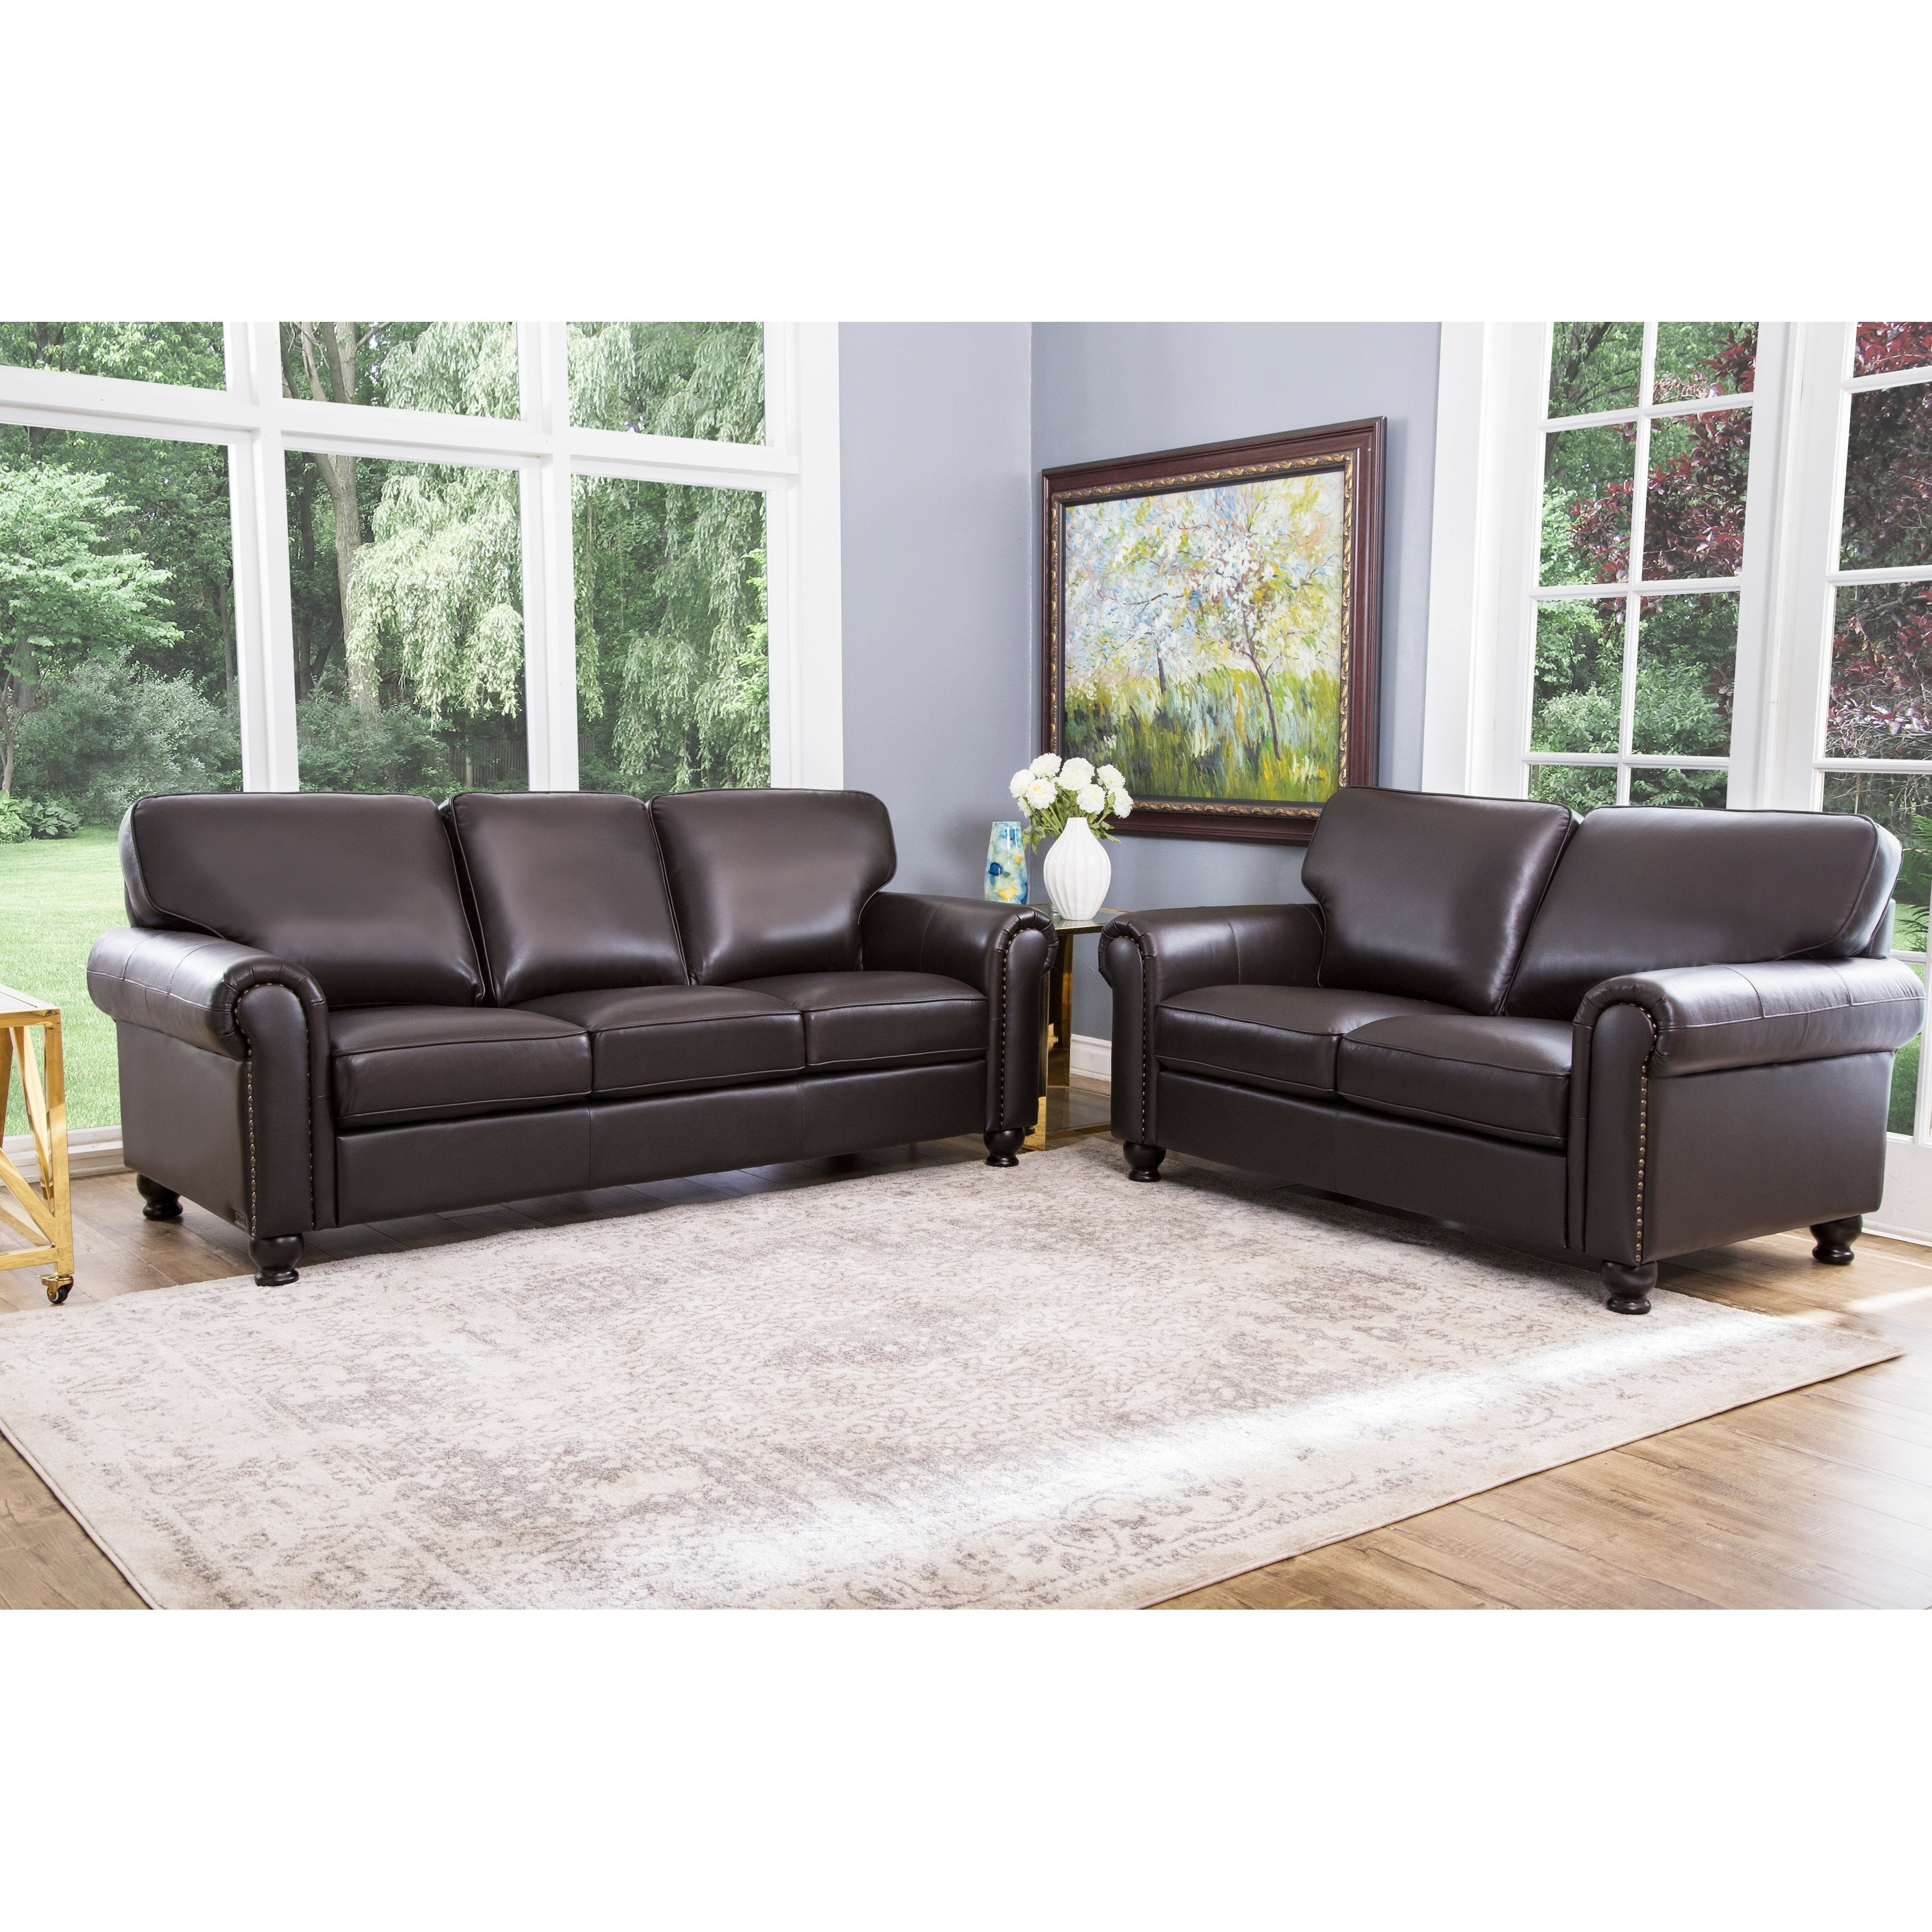 Abson London Top Grain Leather 2 Piece Living Room Set throughout Living Room Set Cheap